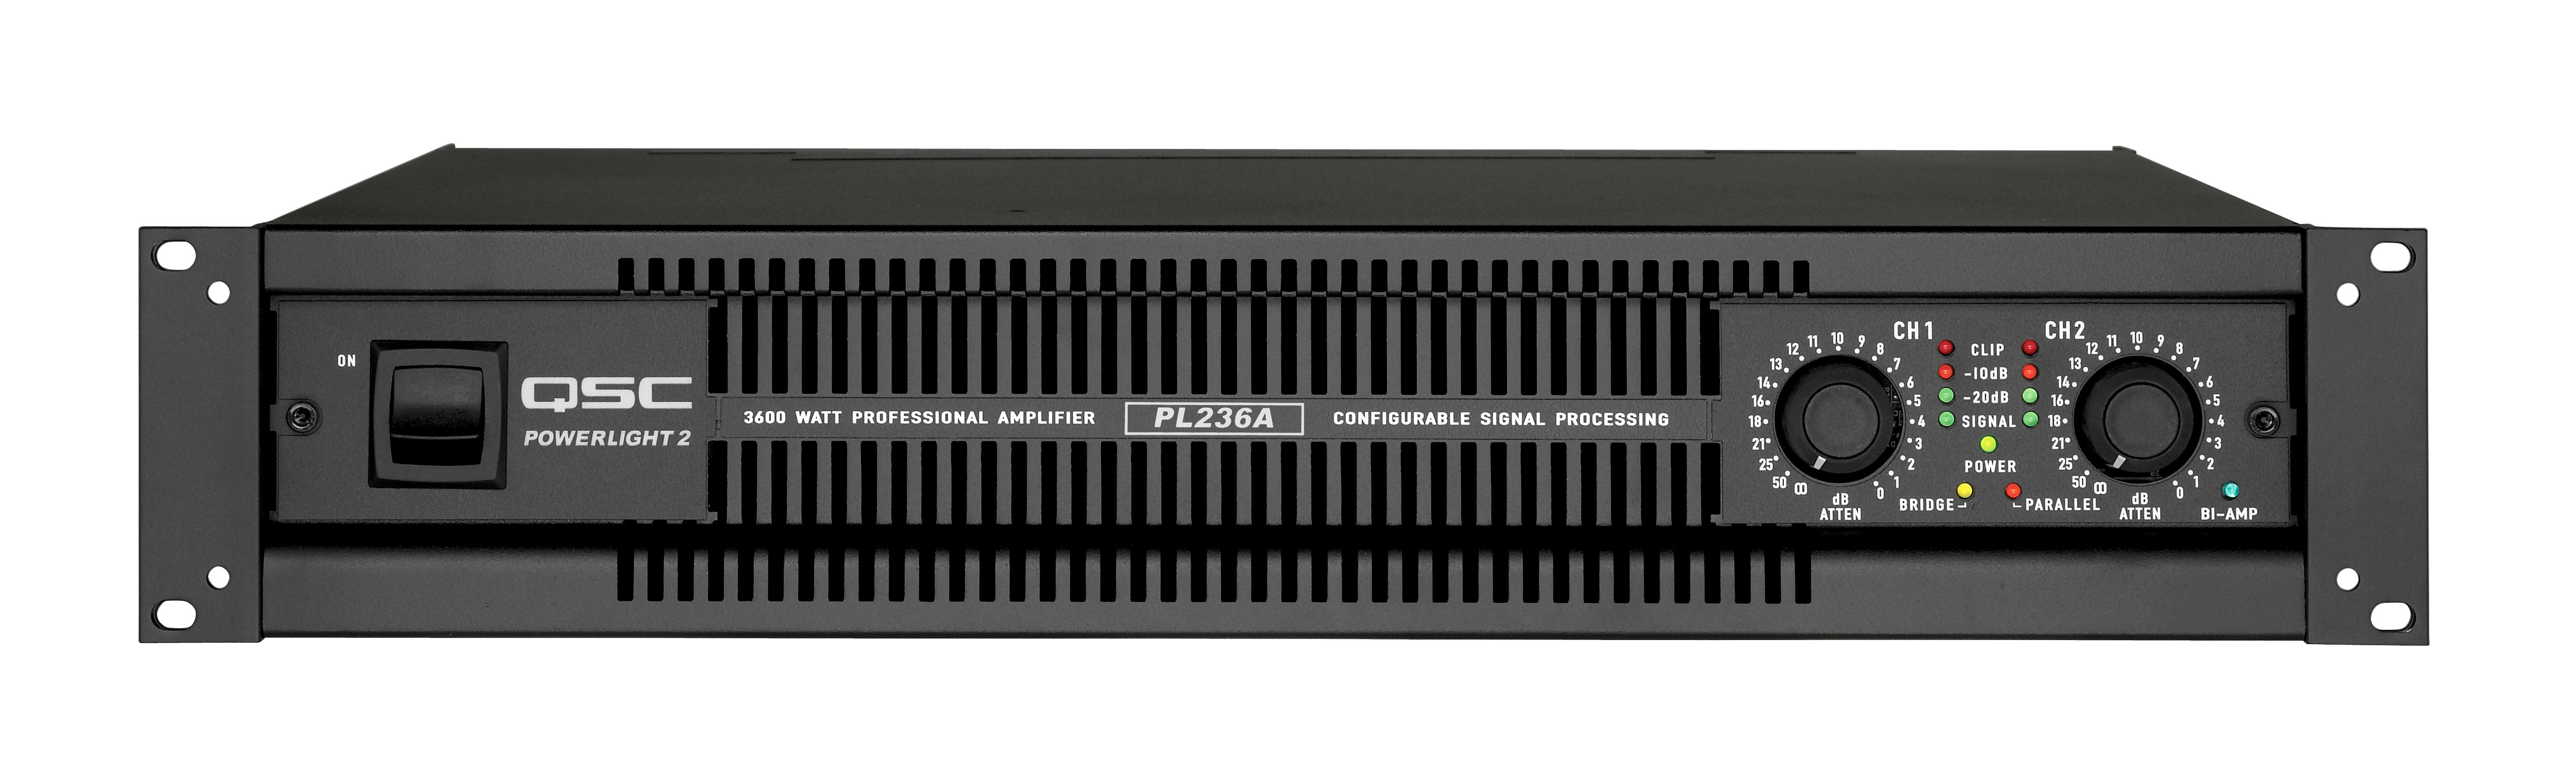 Qsc Pl236 Power Amplifier Rentals Chicago And Nationwide Tc Furlong 50 Watts Audio Rental